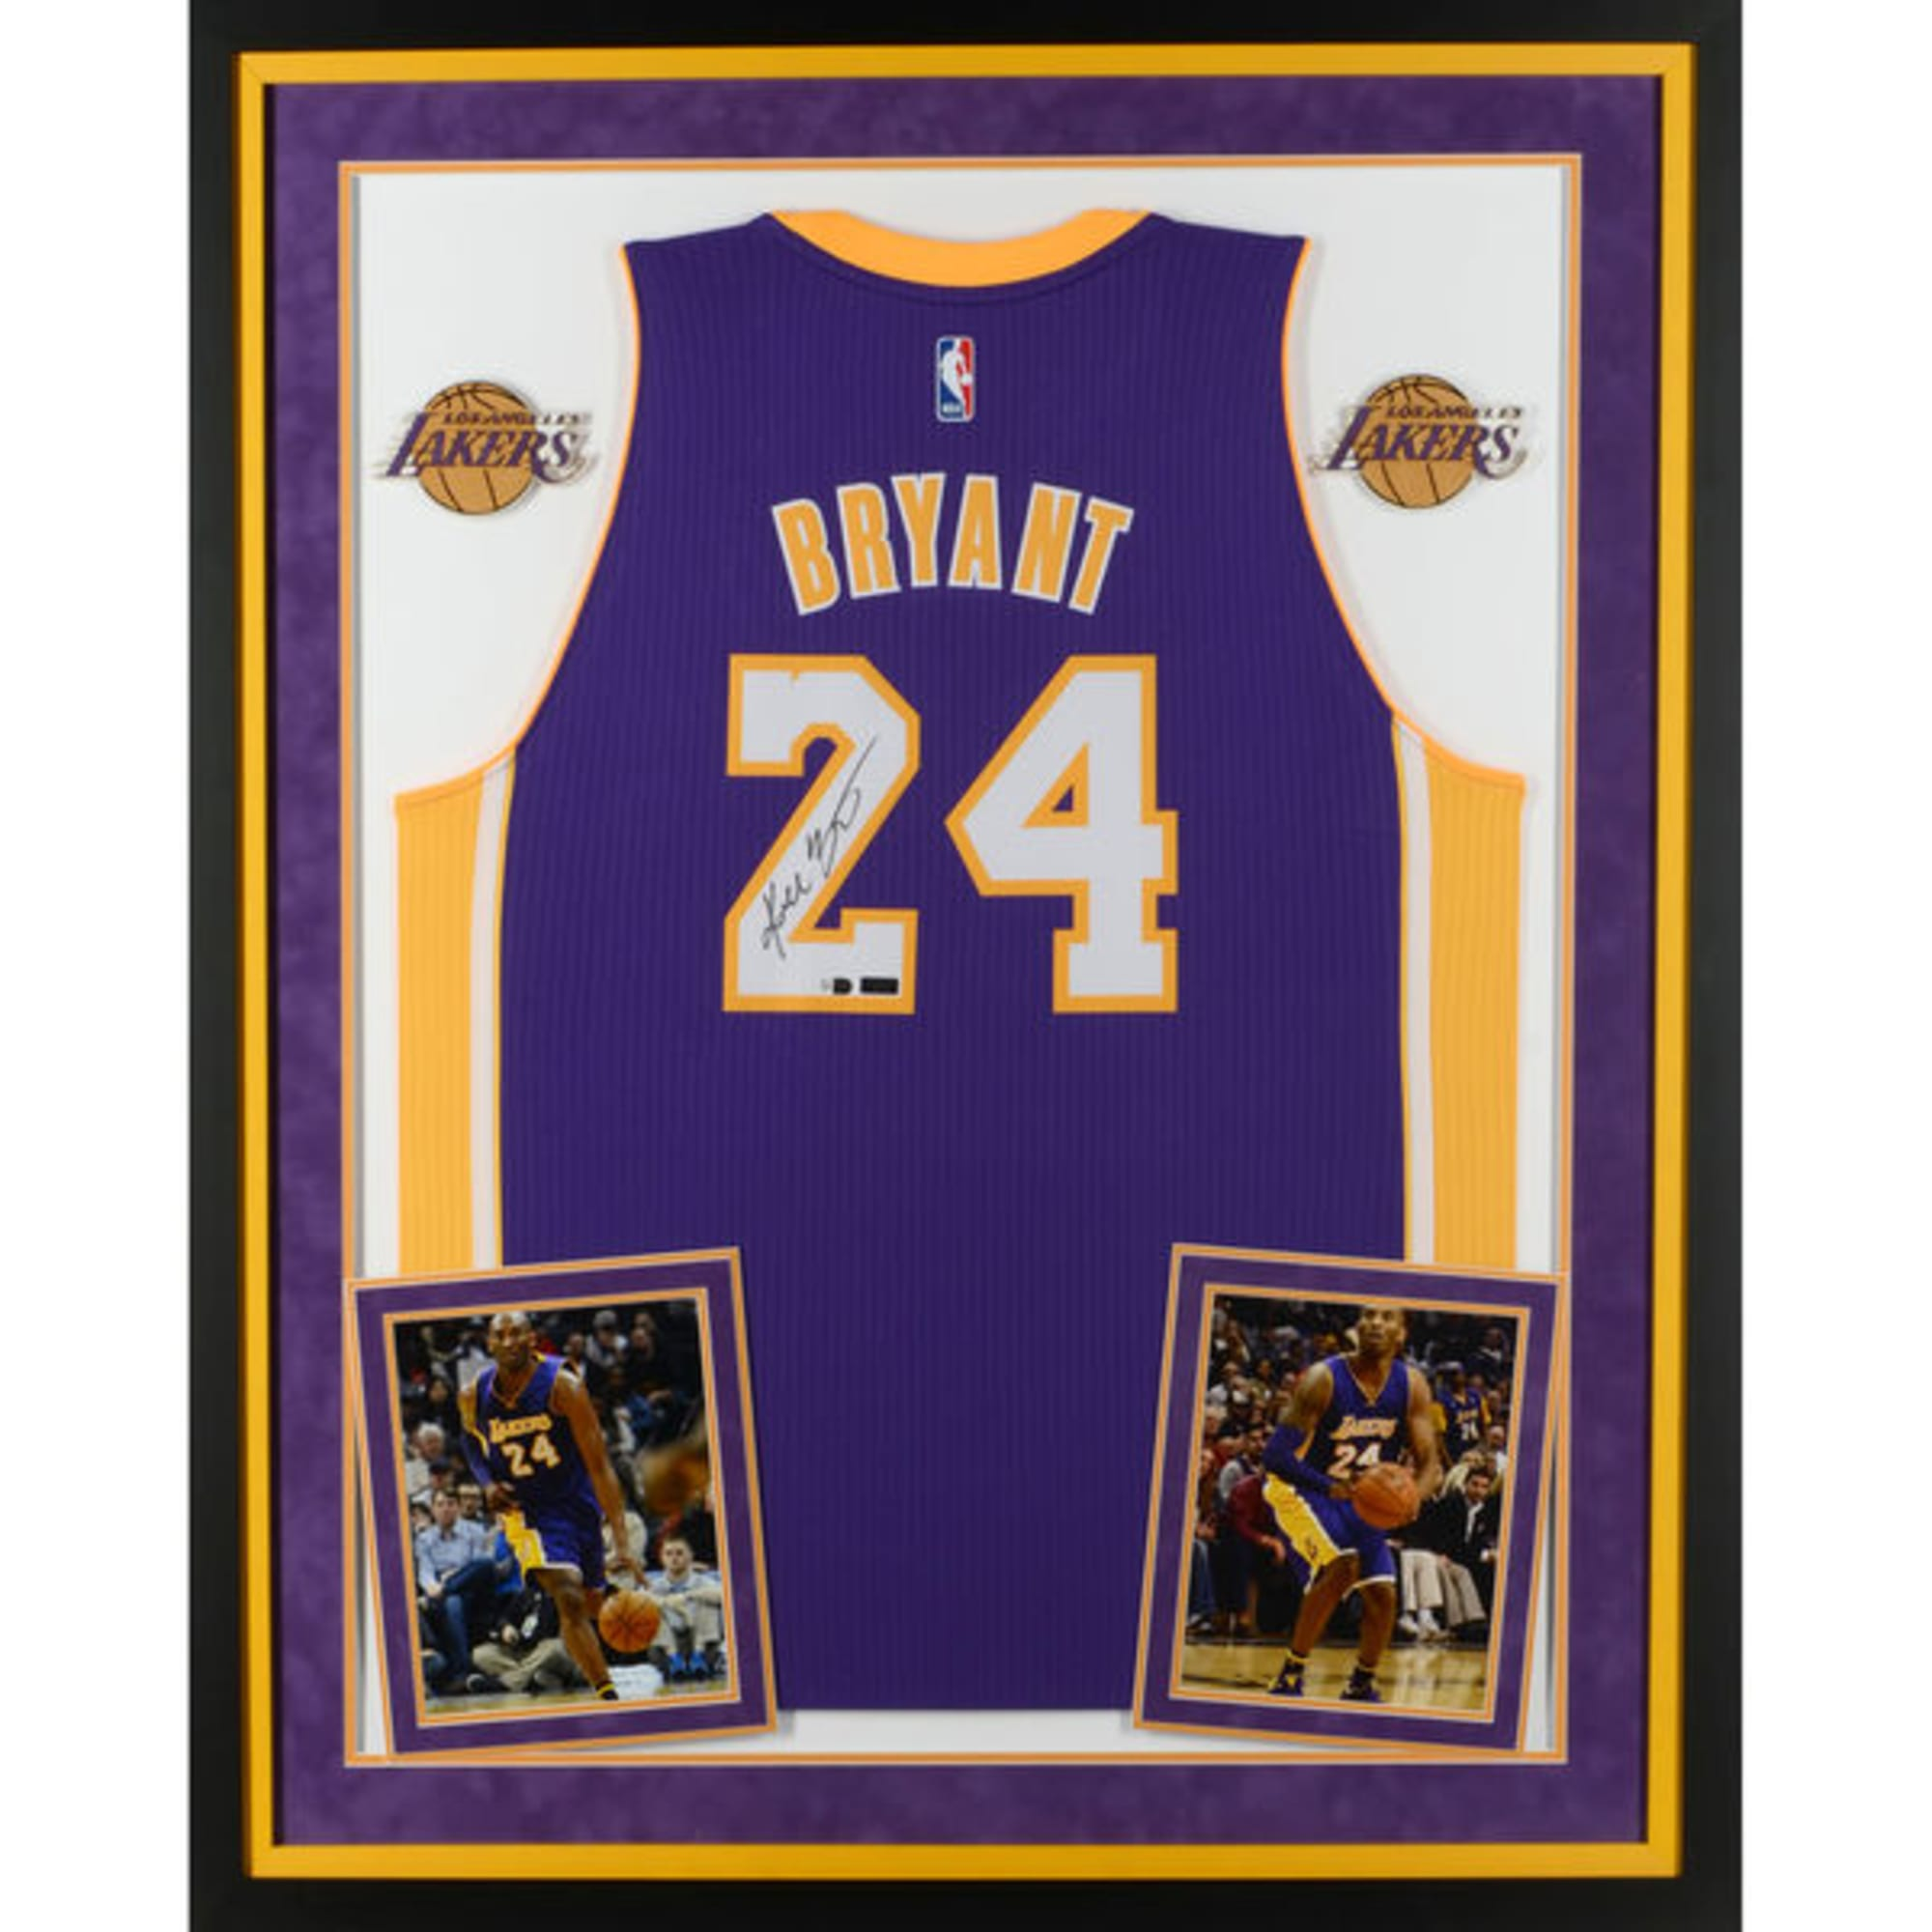 Los Angeles Lakers Gift Guide: 10 must-have gifts for the Man Cave